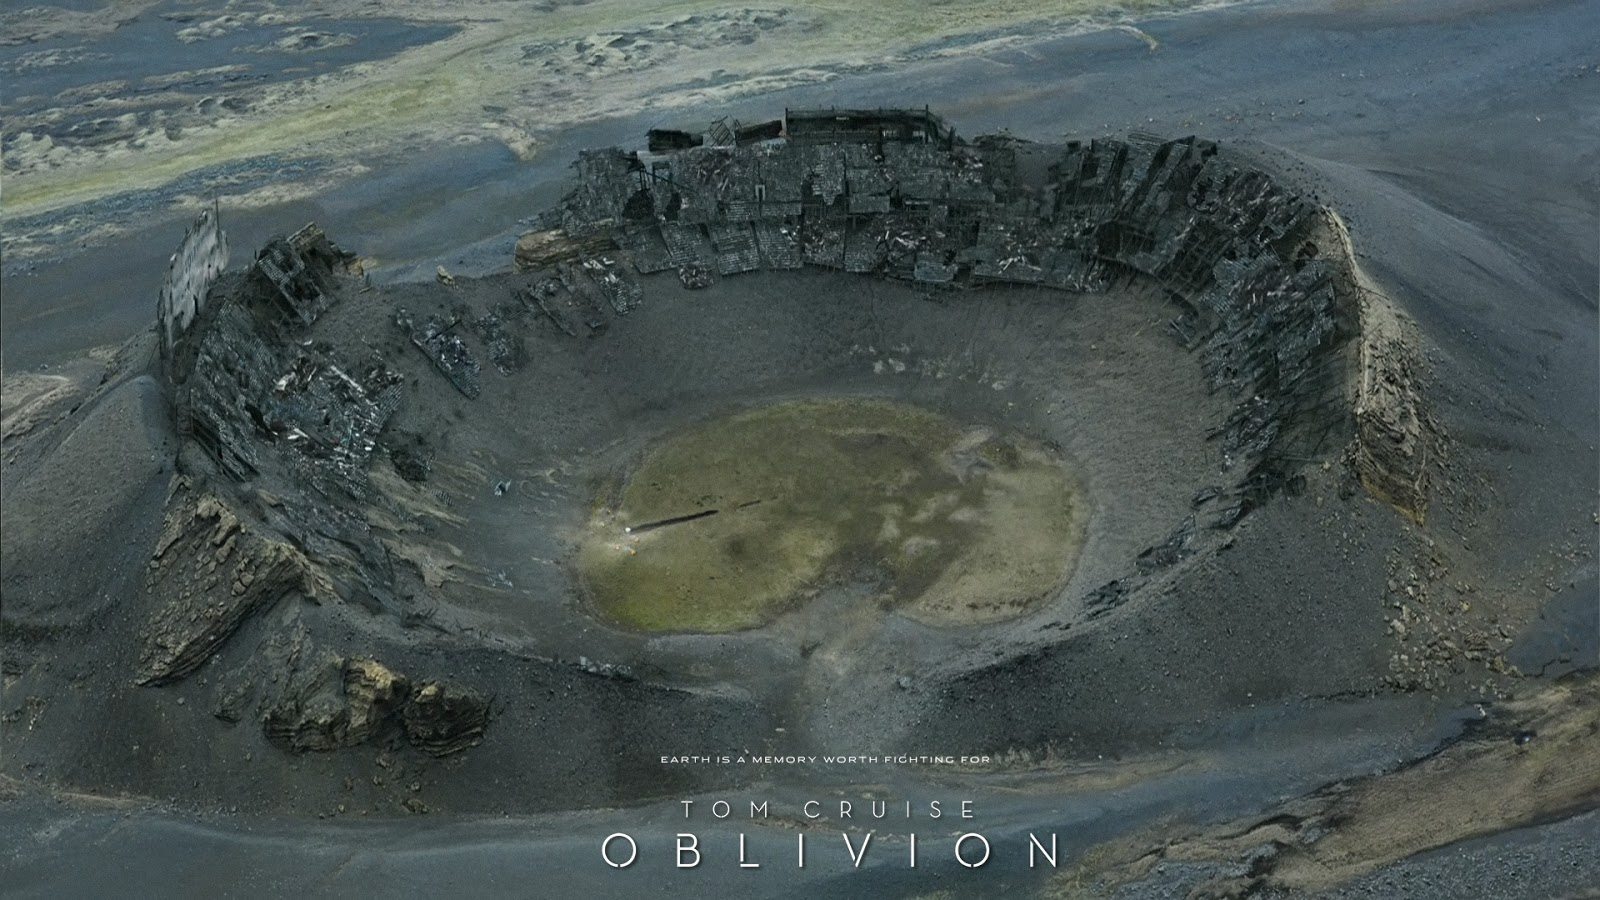 File name : download oblivion movie 2013 wallpaper hd